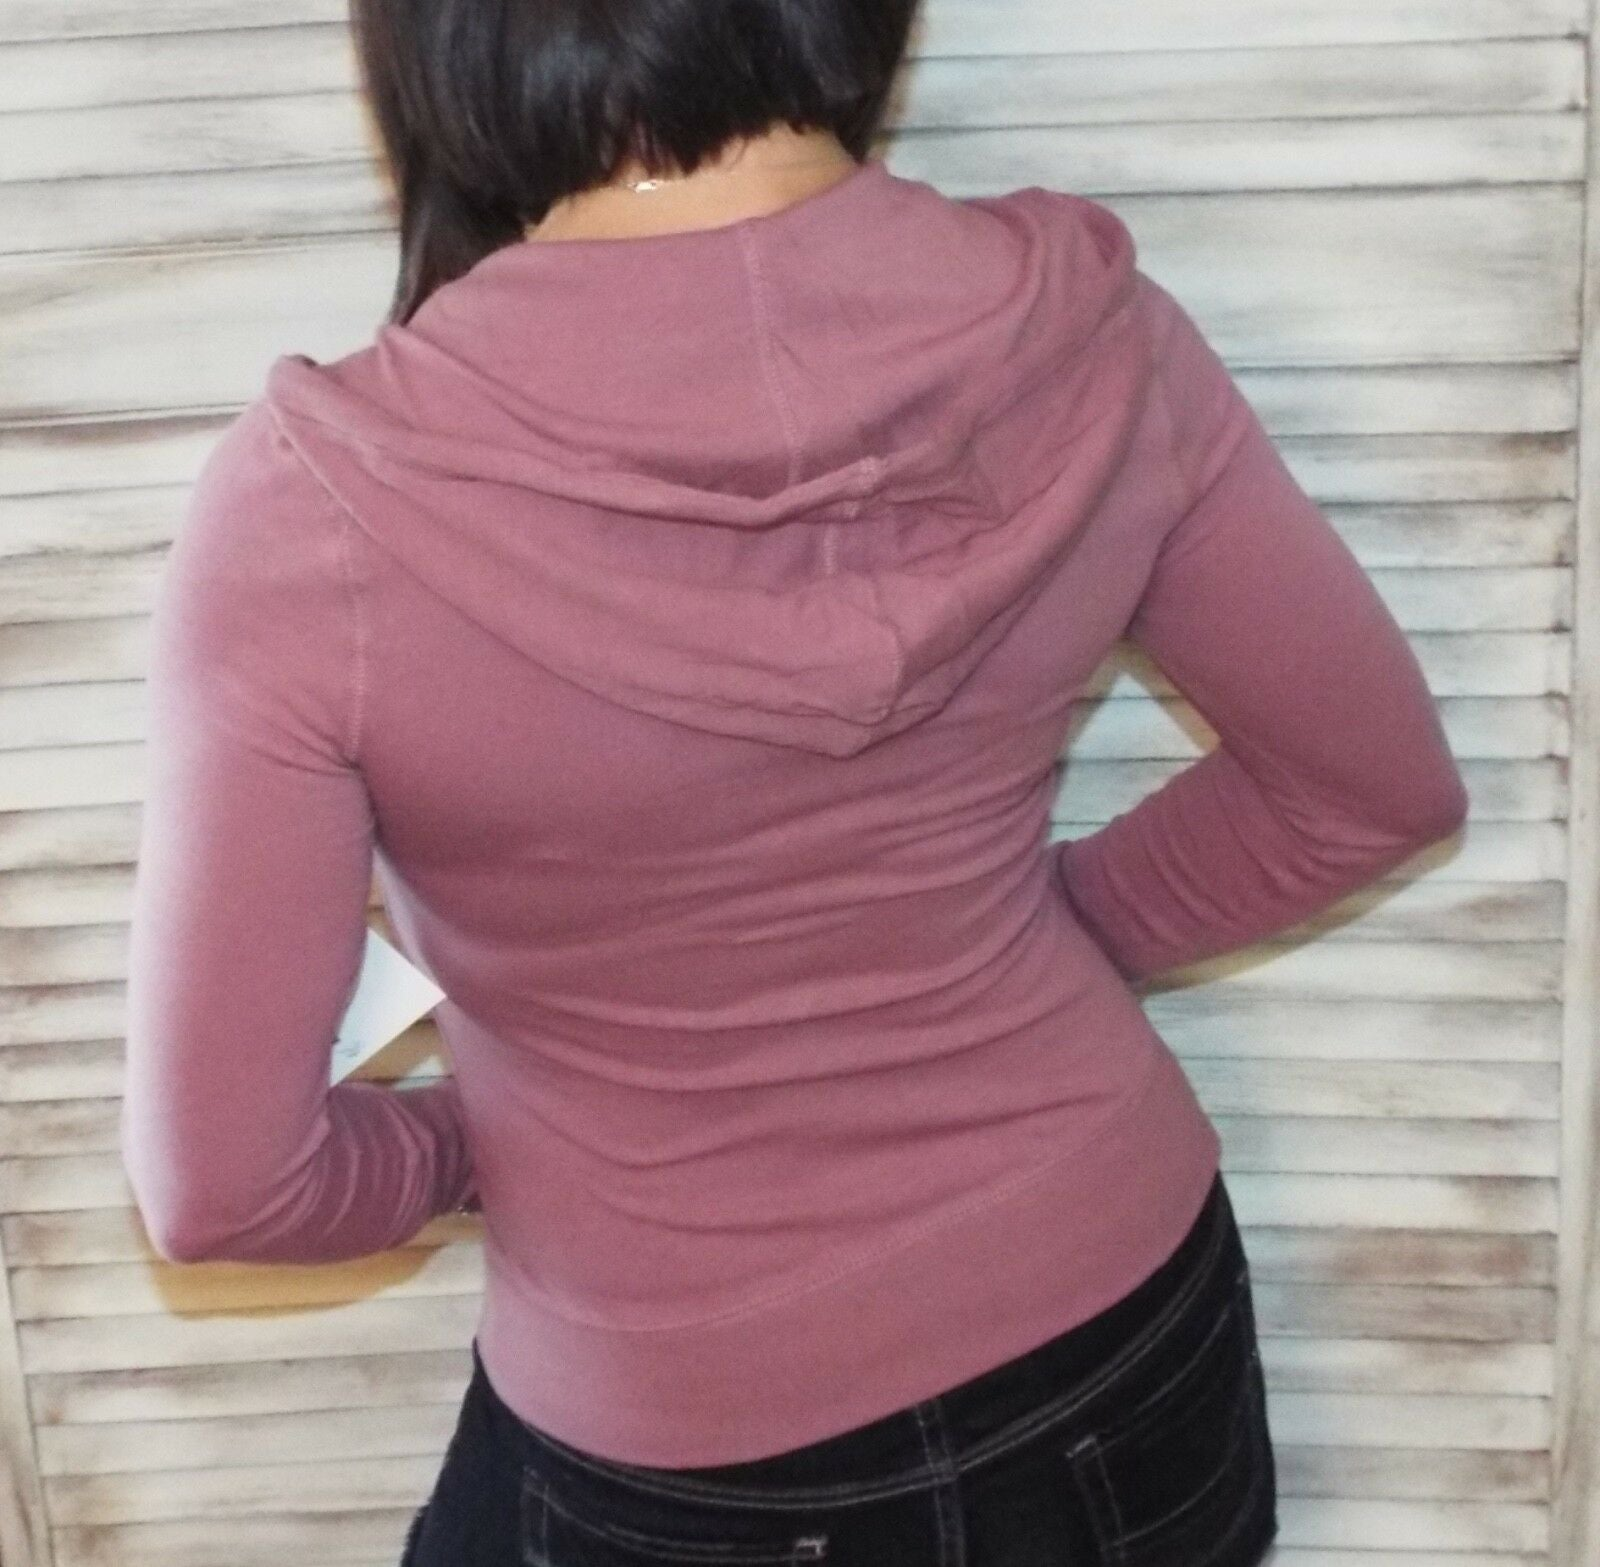 Very Sexy Zip Up Kangaroo Pocket Thermal Hoodie Jacket Sweater Yoga Mauve S/M/L